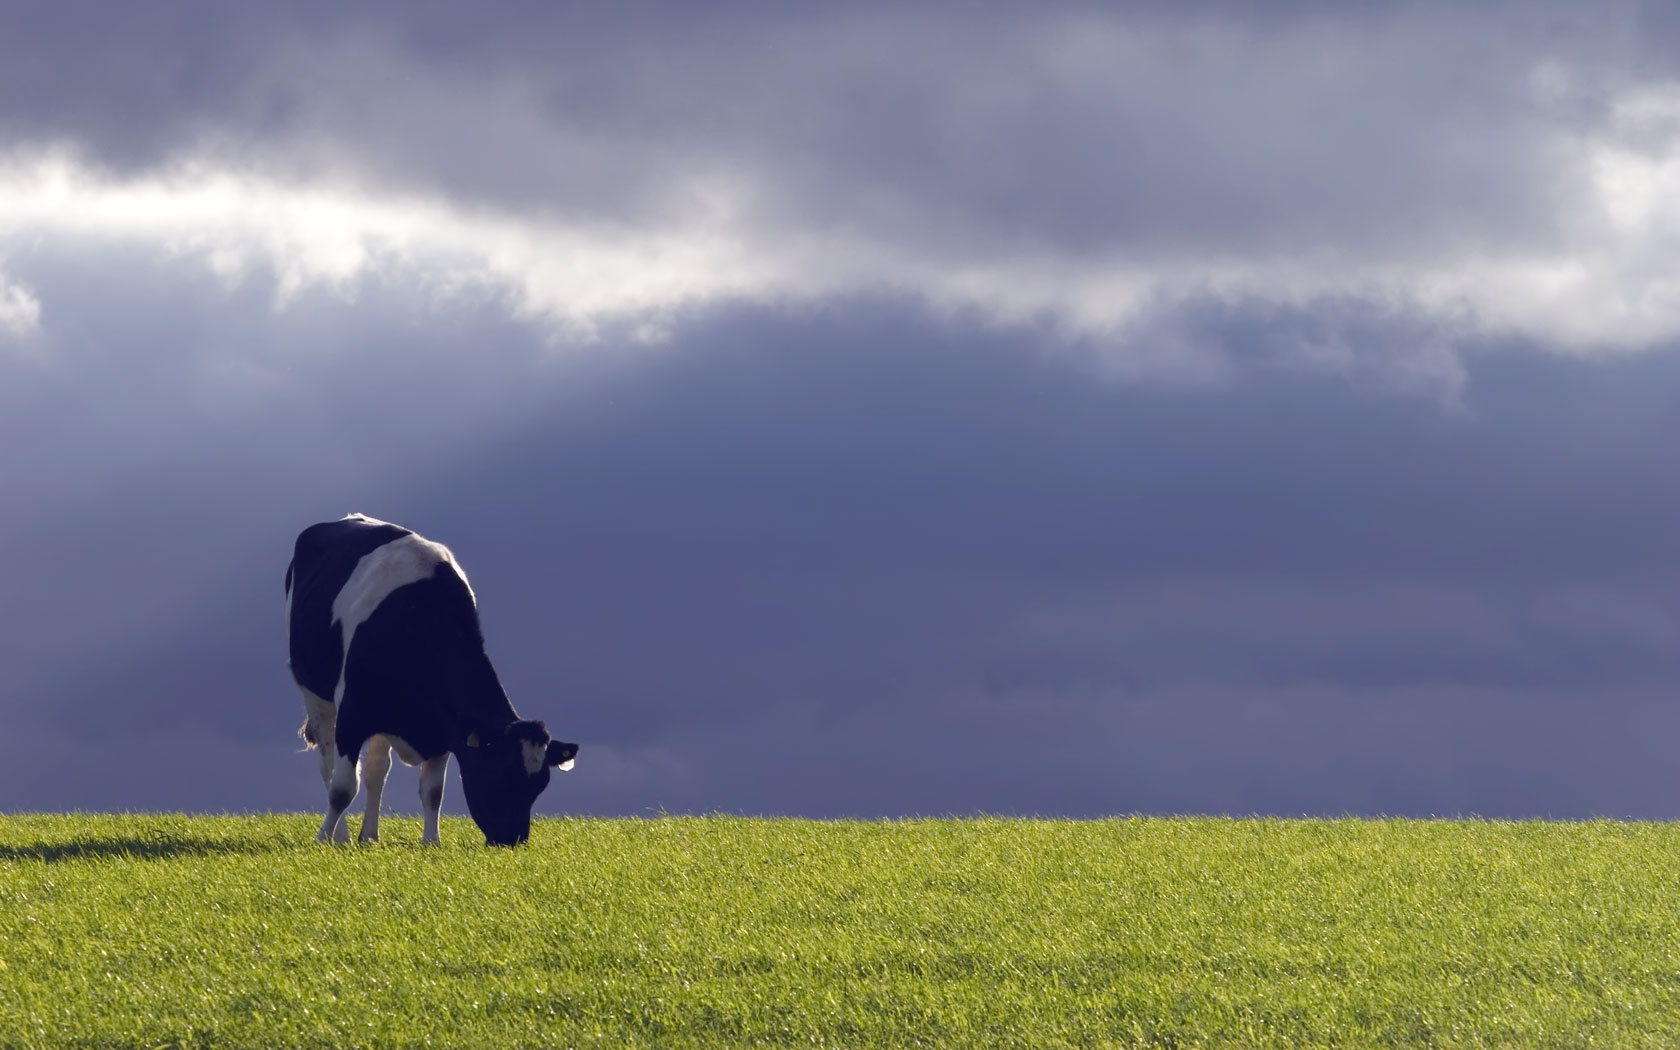 http://sd-1.archive-host.com/membres/images/209526371319110277/cow-stormy-sky.jpg